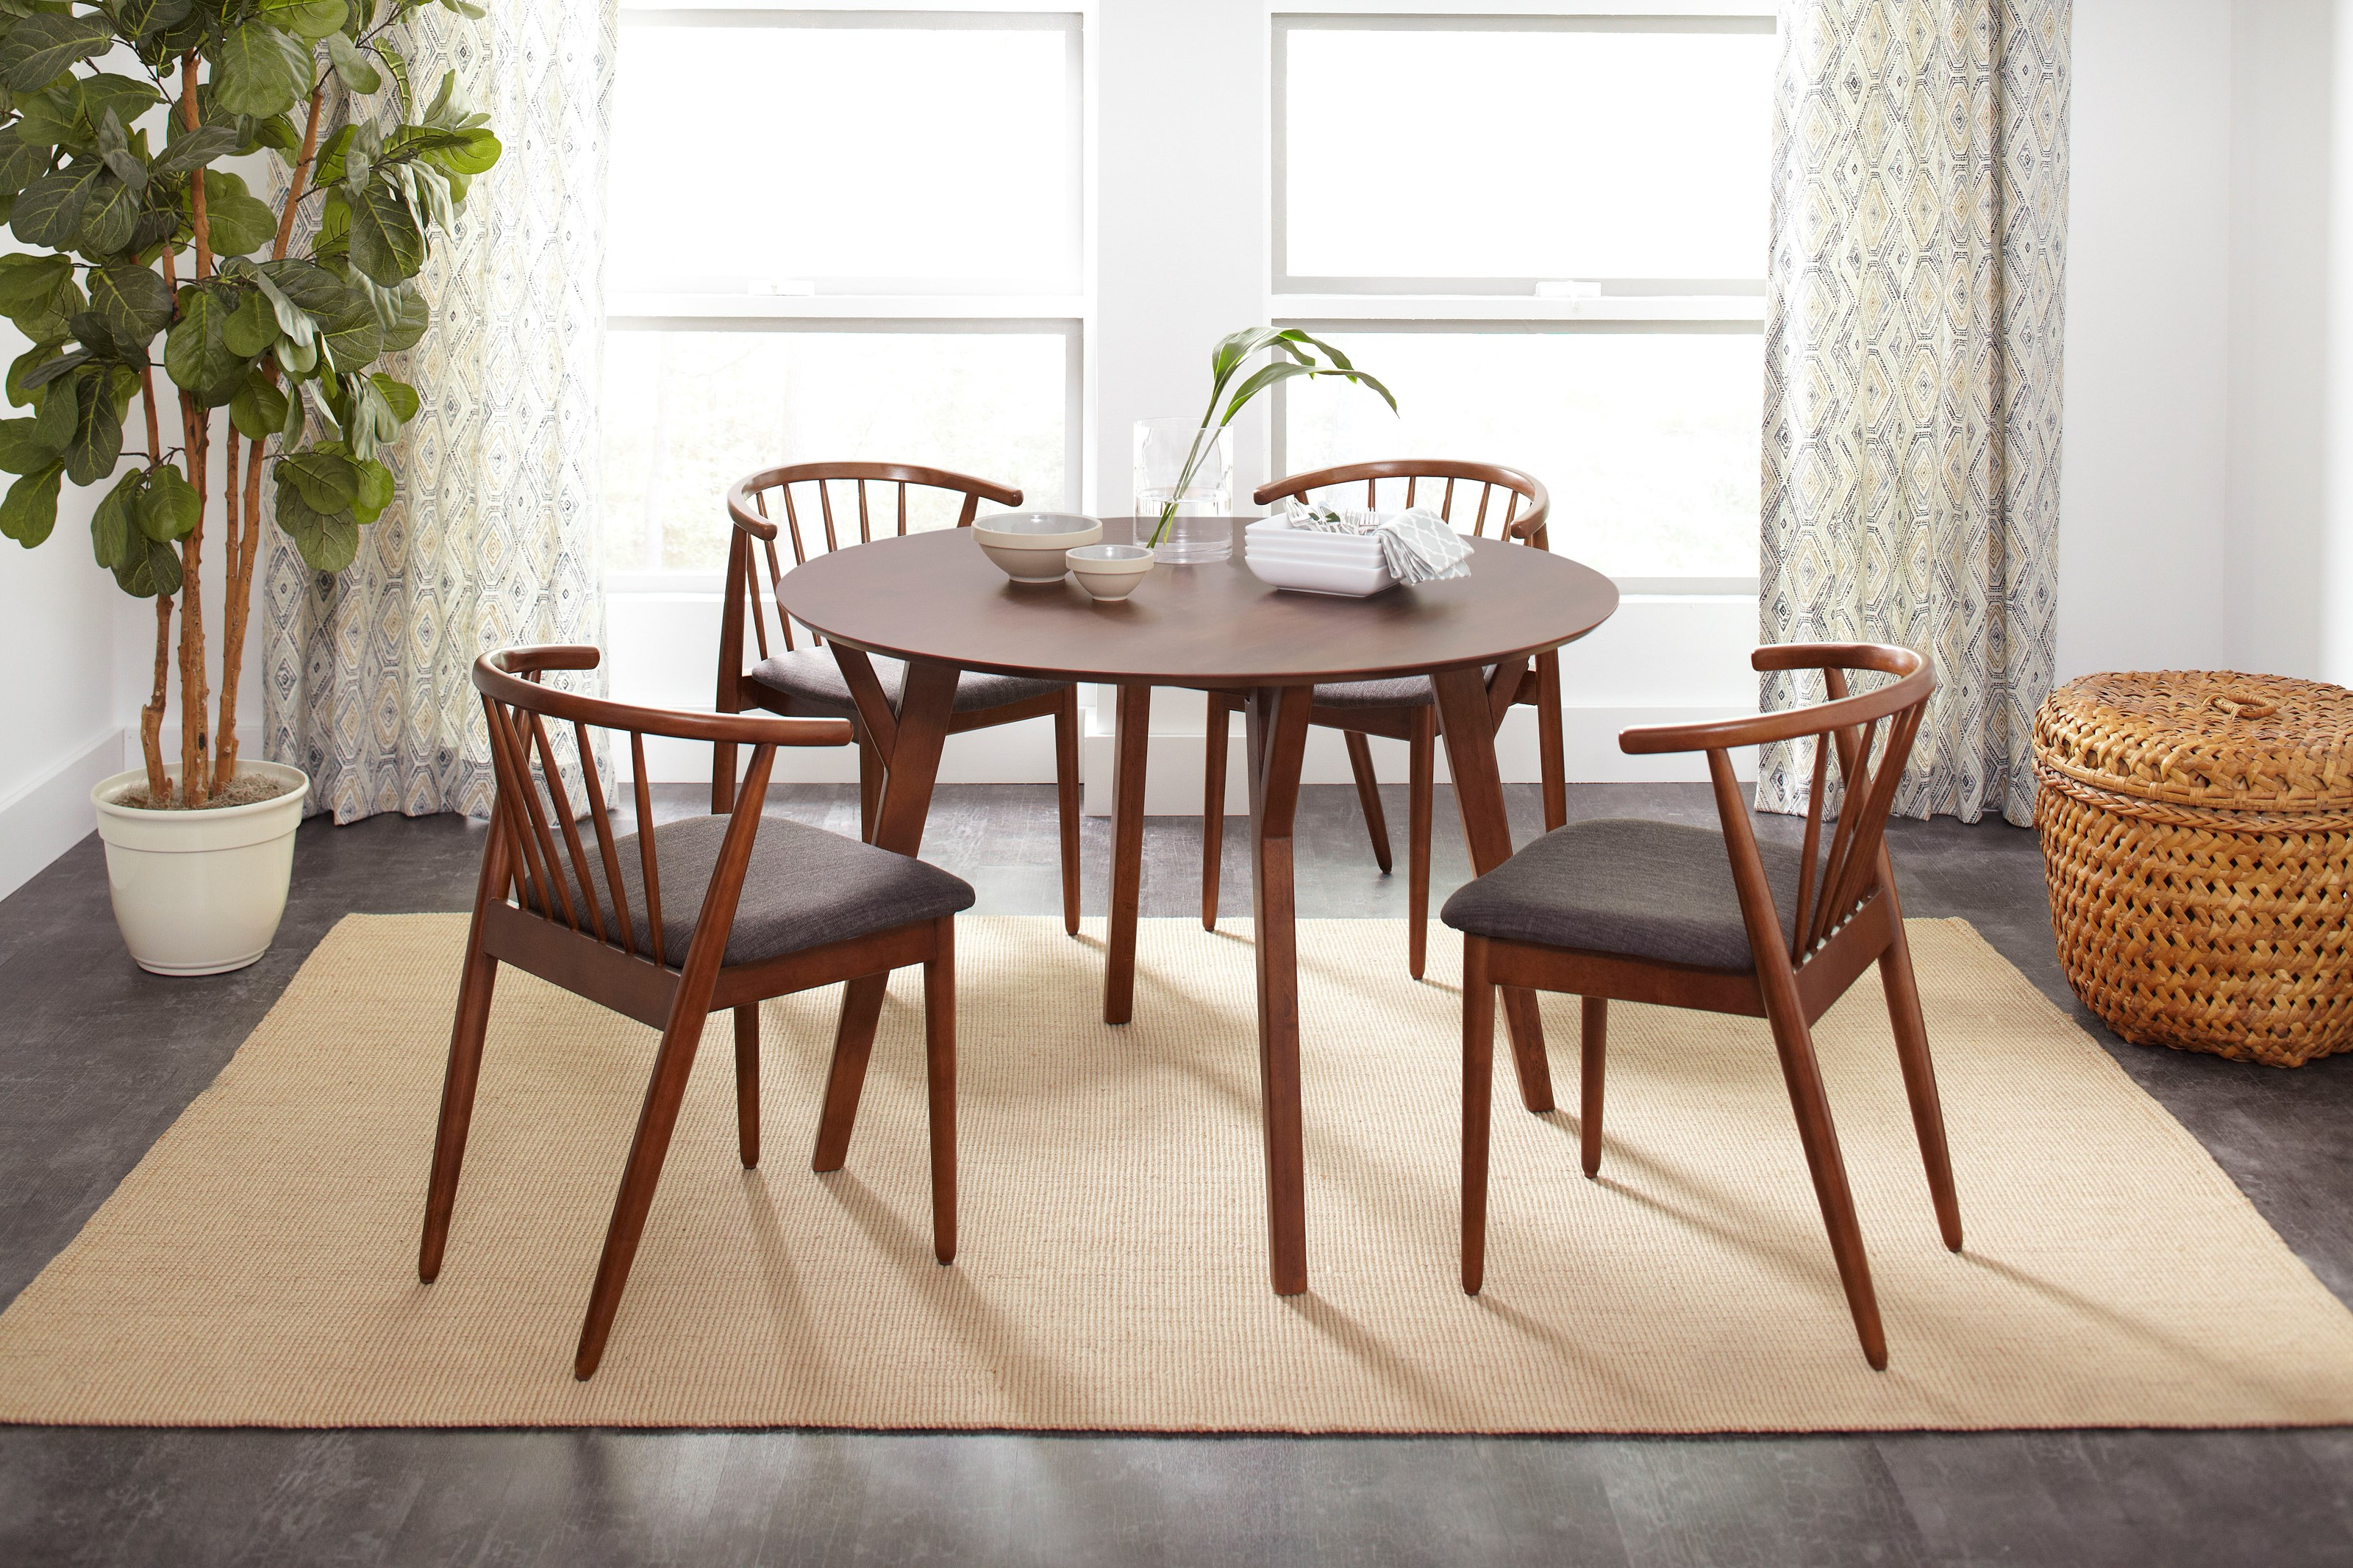 Copenhagen Round Dining Table and Chair Set by Jofran at Jofran